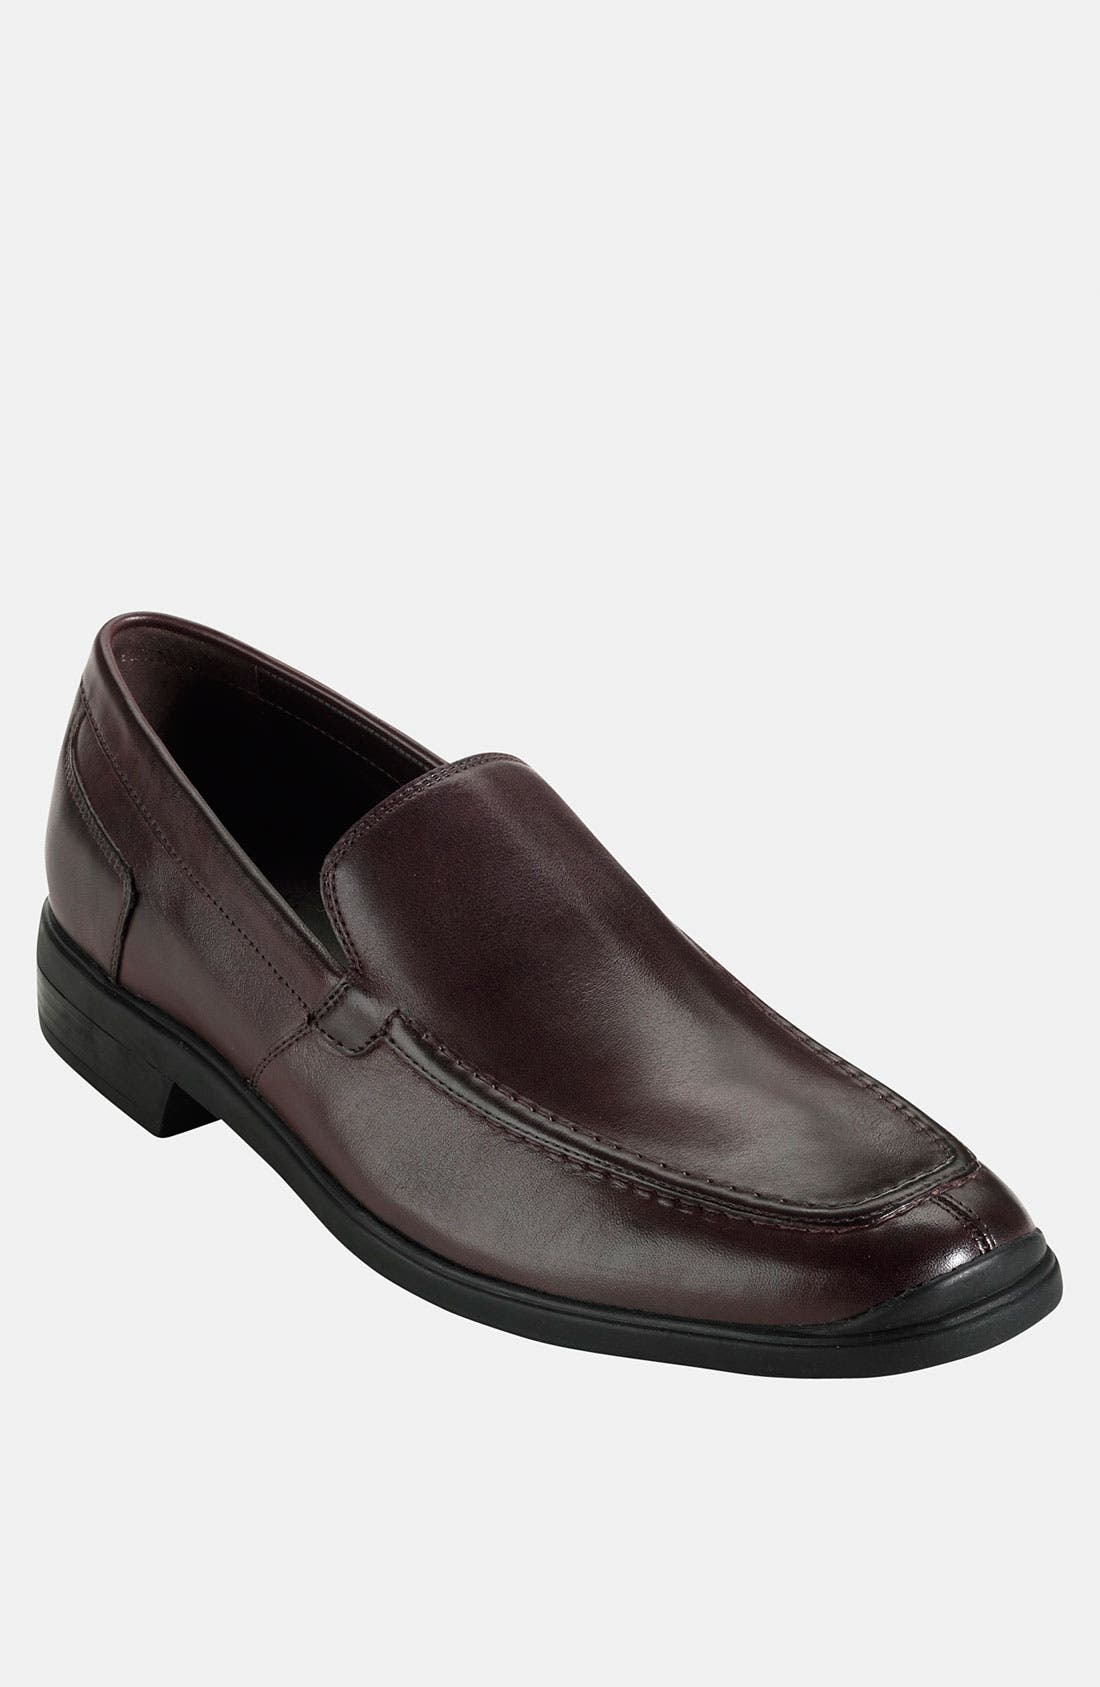 Main Image - Cole Haan 'Air Stylar' Split Toe Loafer   (Men)